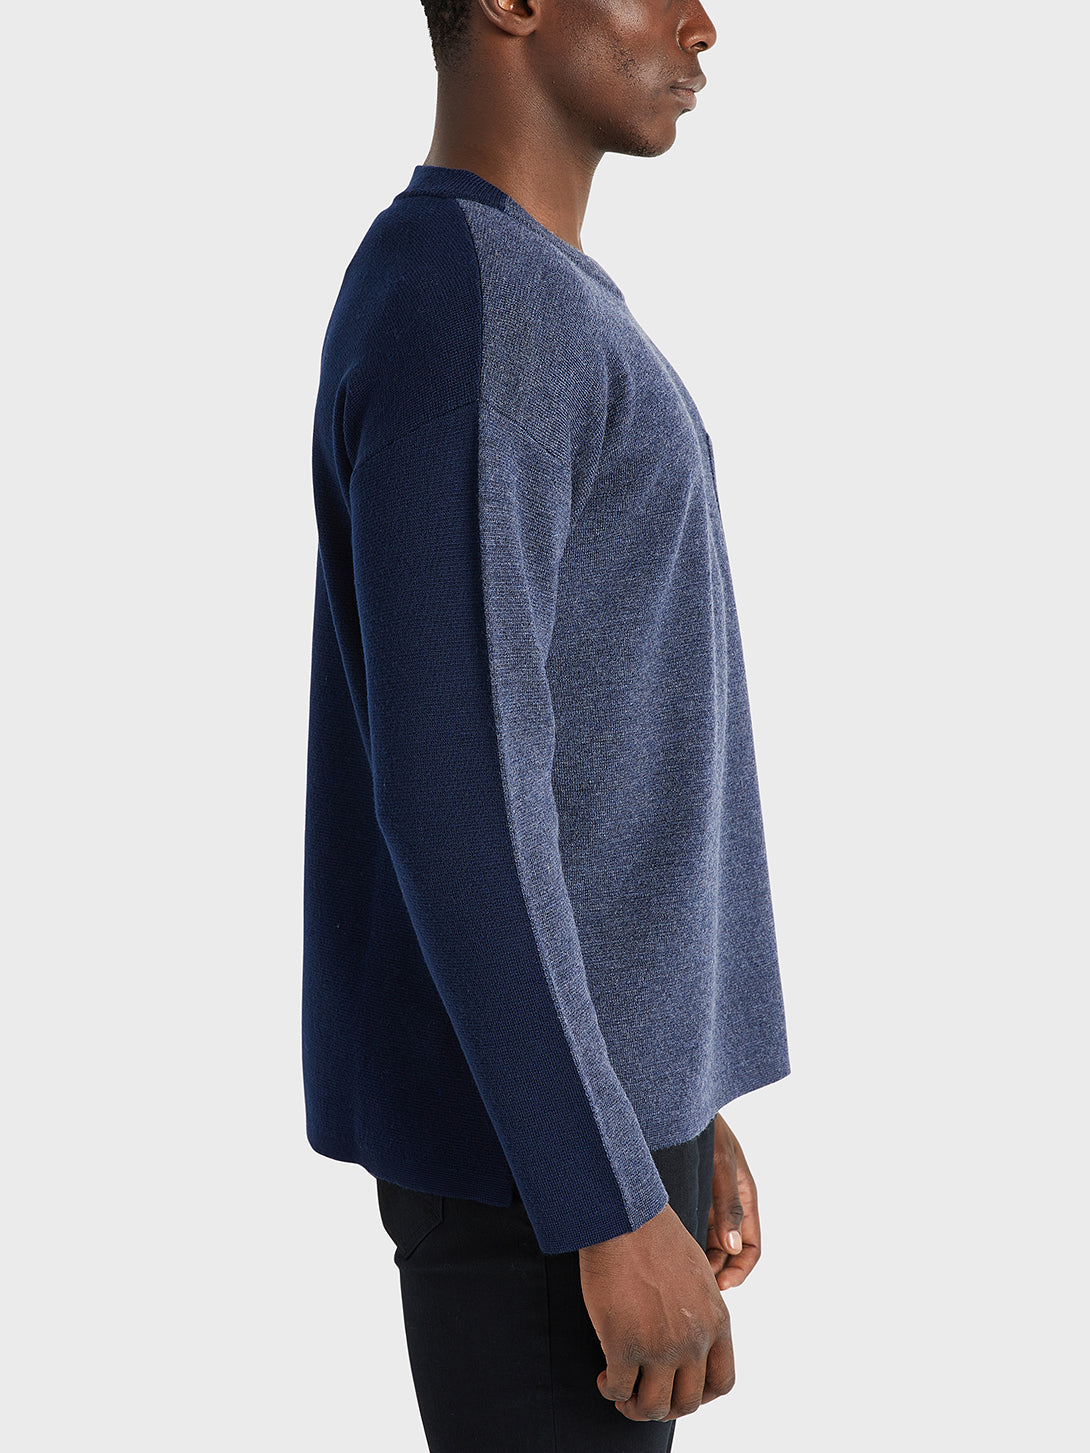 ONS Clothing Men's sweater in HEATHER NAVY